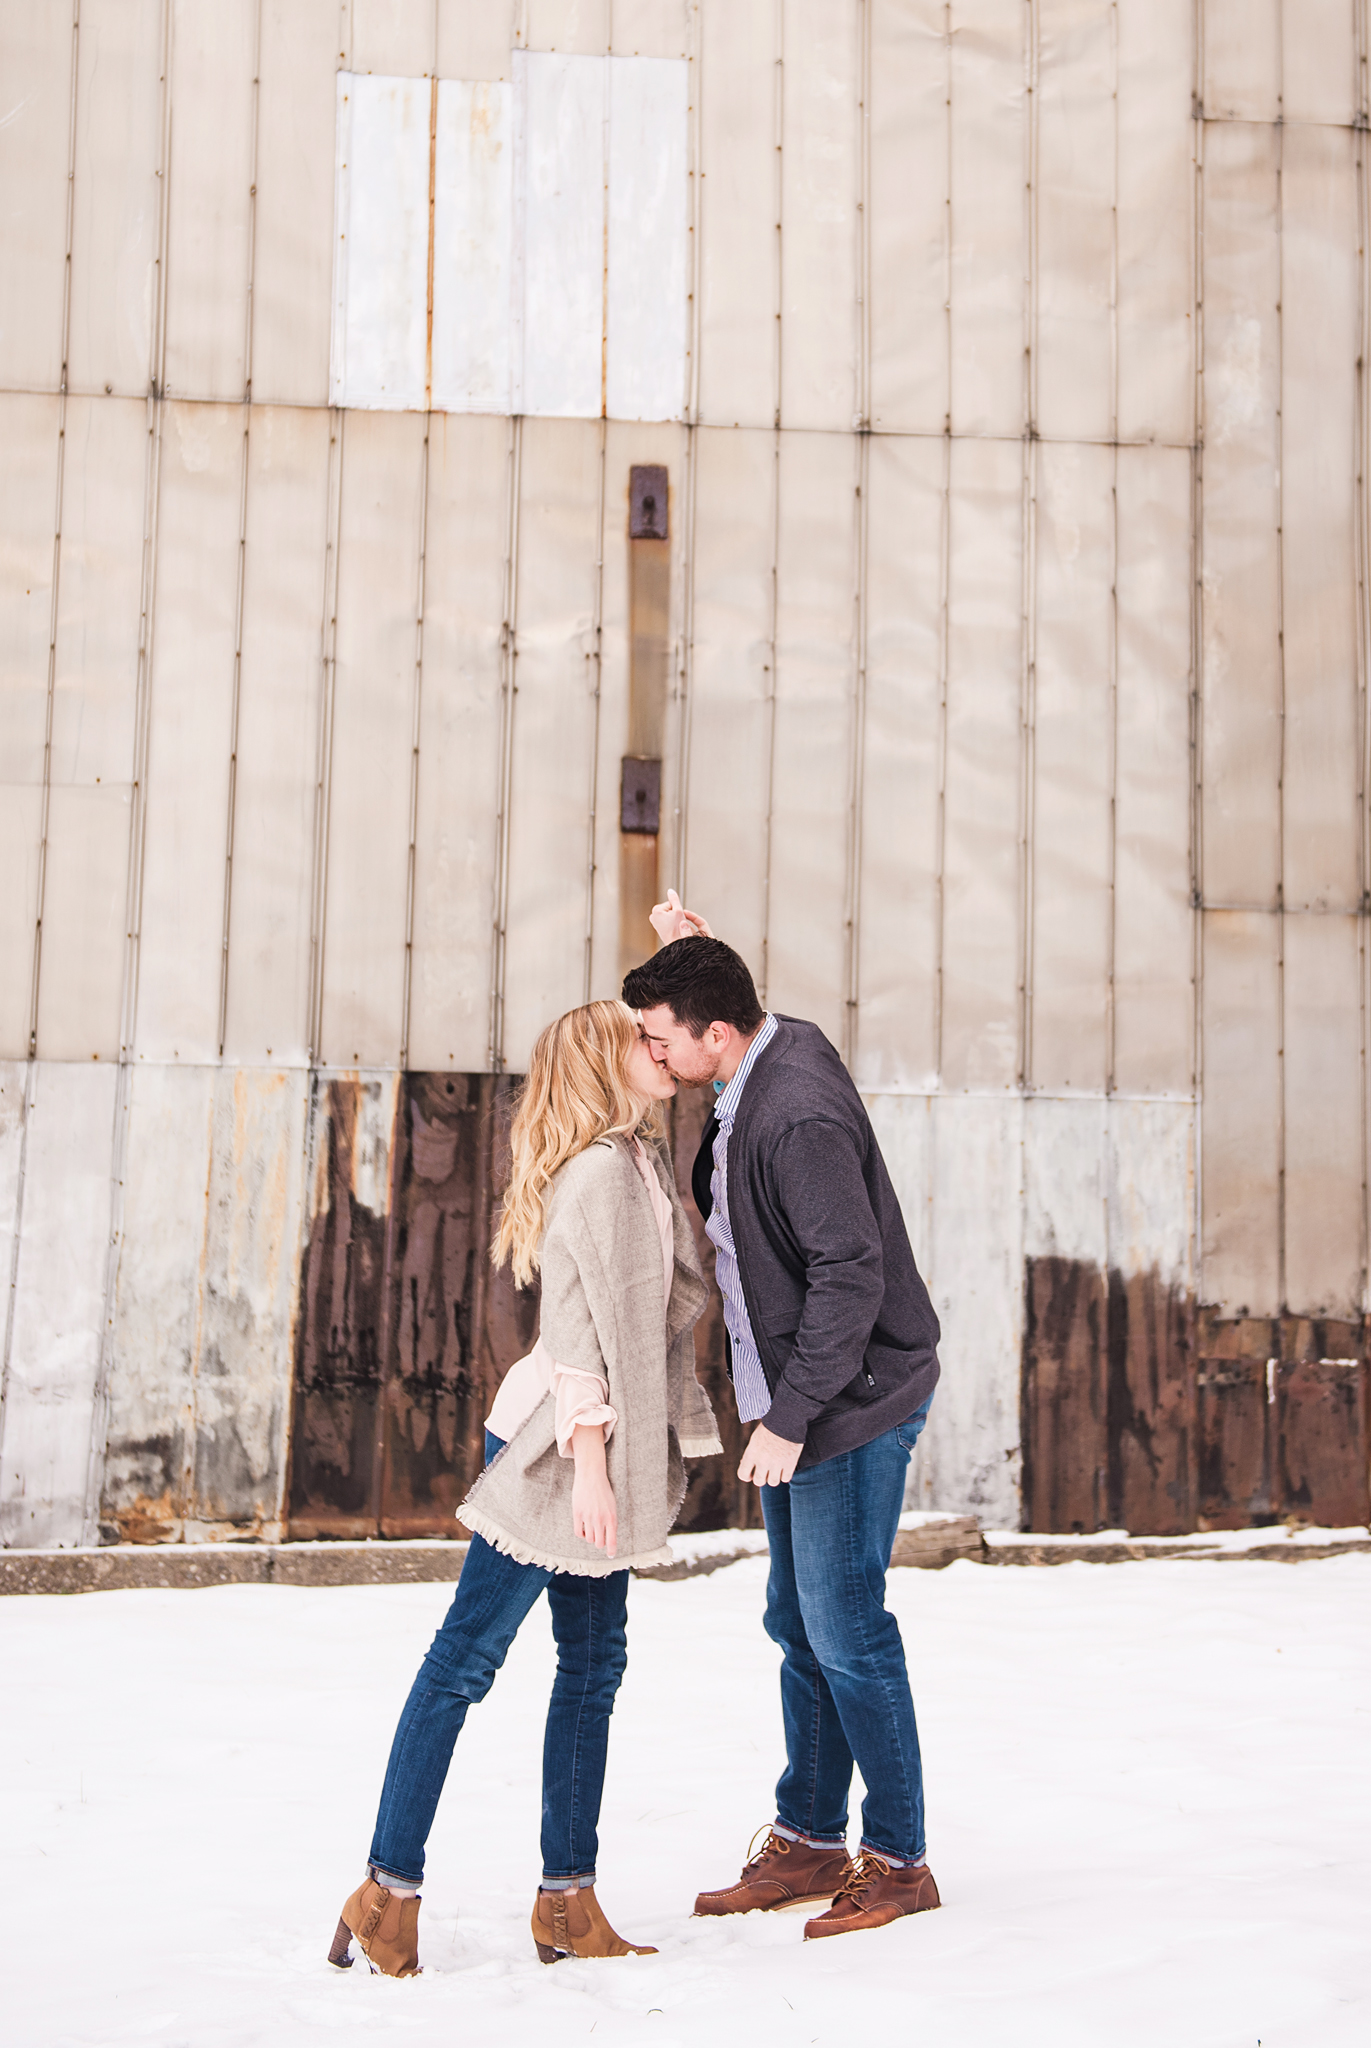 Schoen_Place_Rochester_Engagement_Session_JILL_STUDIO_Rochester_NY_Photographer_DSC_1225.jpg